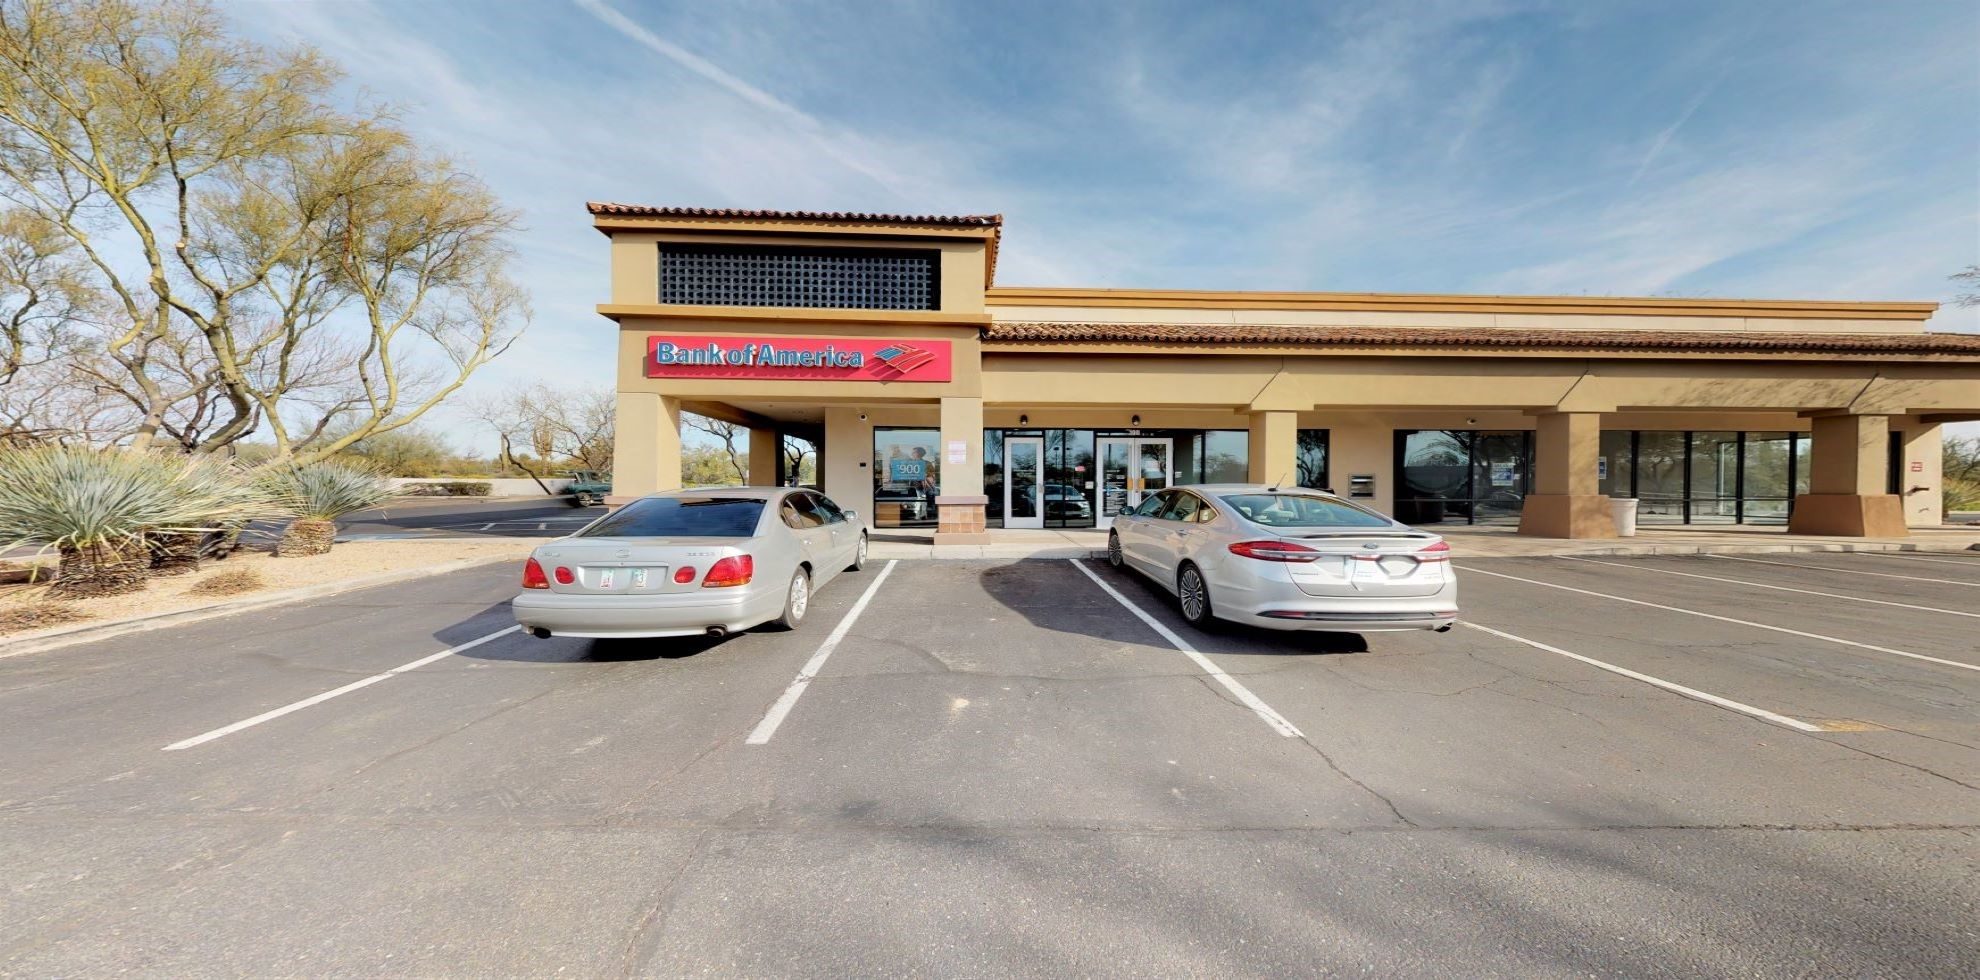 Bank of America financial center with walk-up ATM   29822 N Cave Creek Rd, Cave Creek, AZ 85331